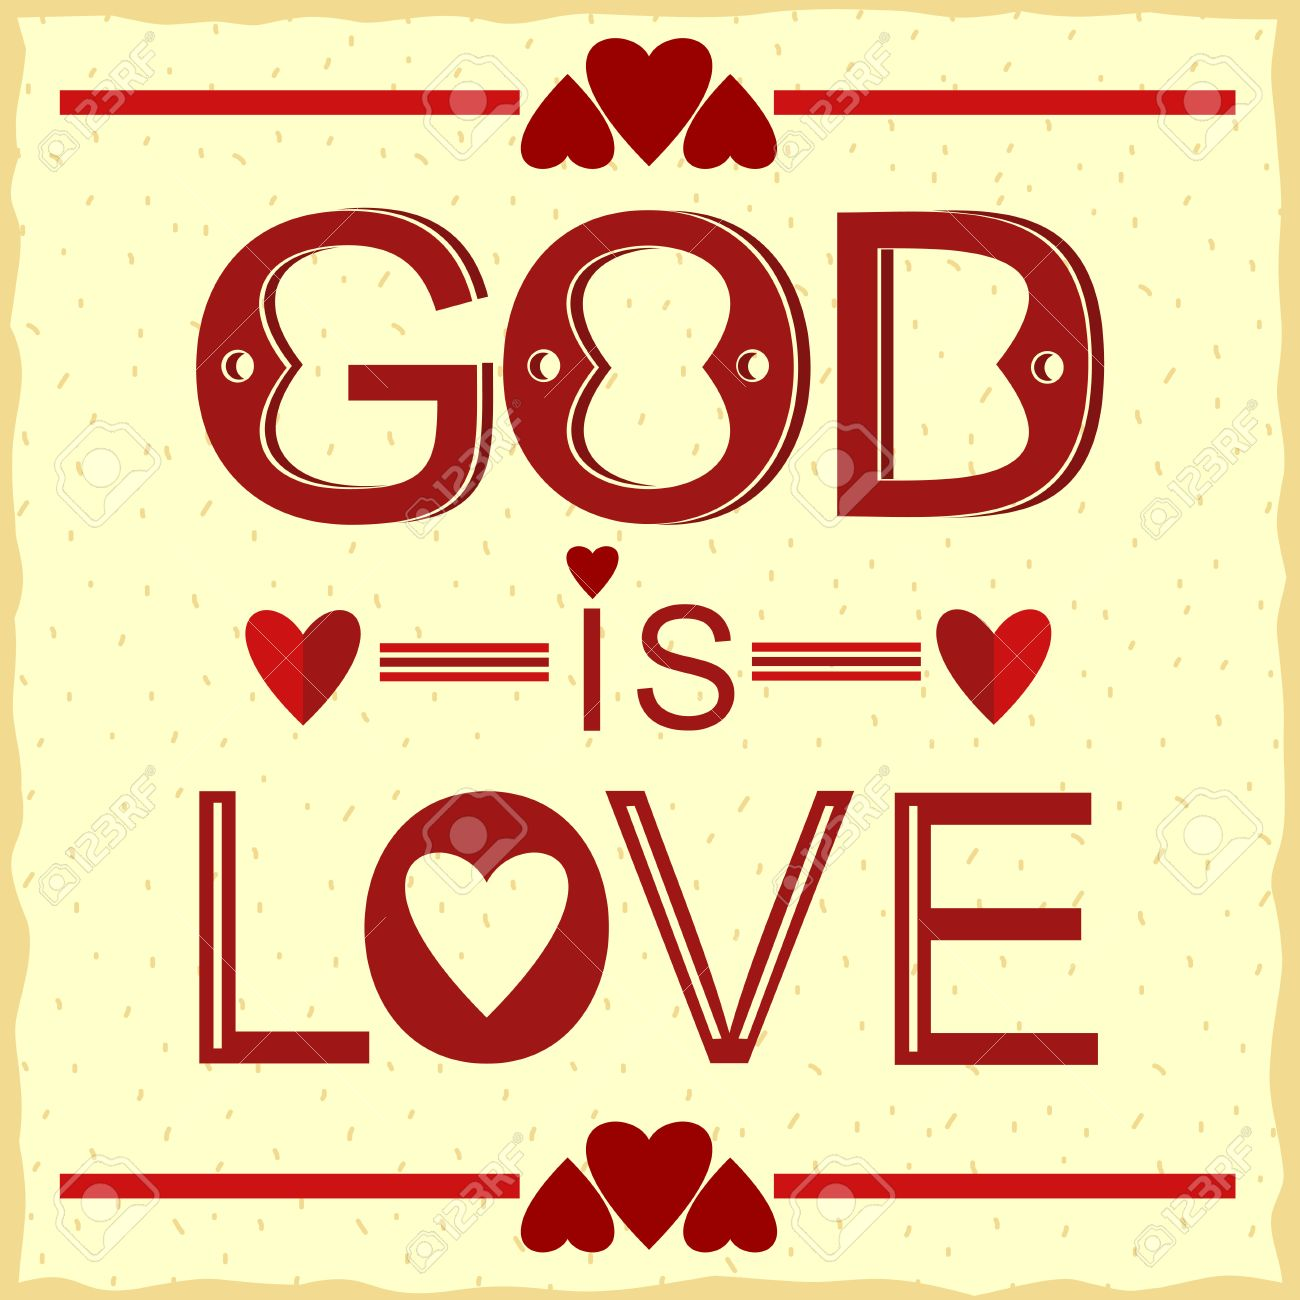 Bible verse god is love in red with hearts royalty free cliparts bible verse god is love in red with hearts stock vector 54968450 buycottarizona Image collections